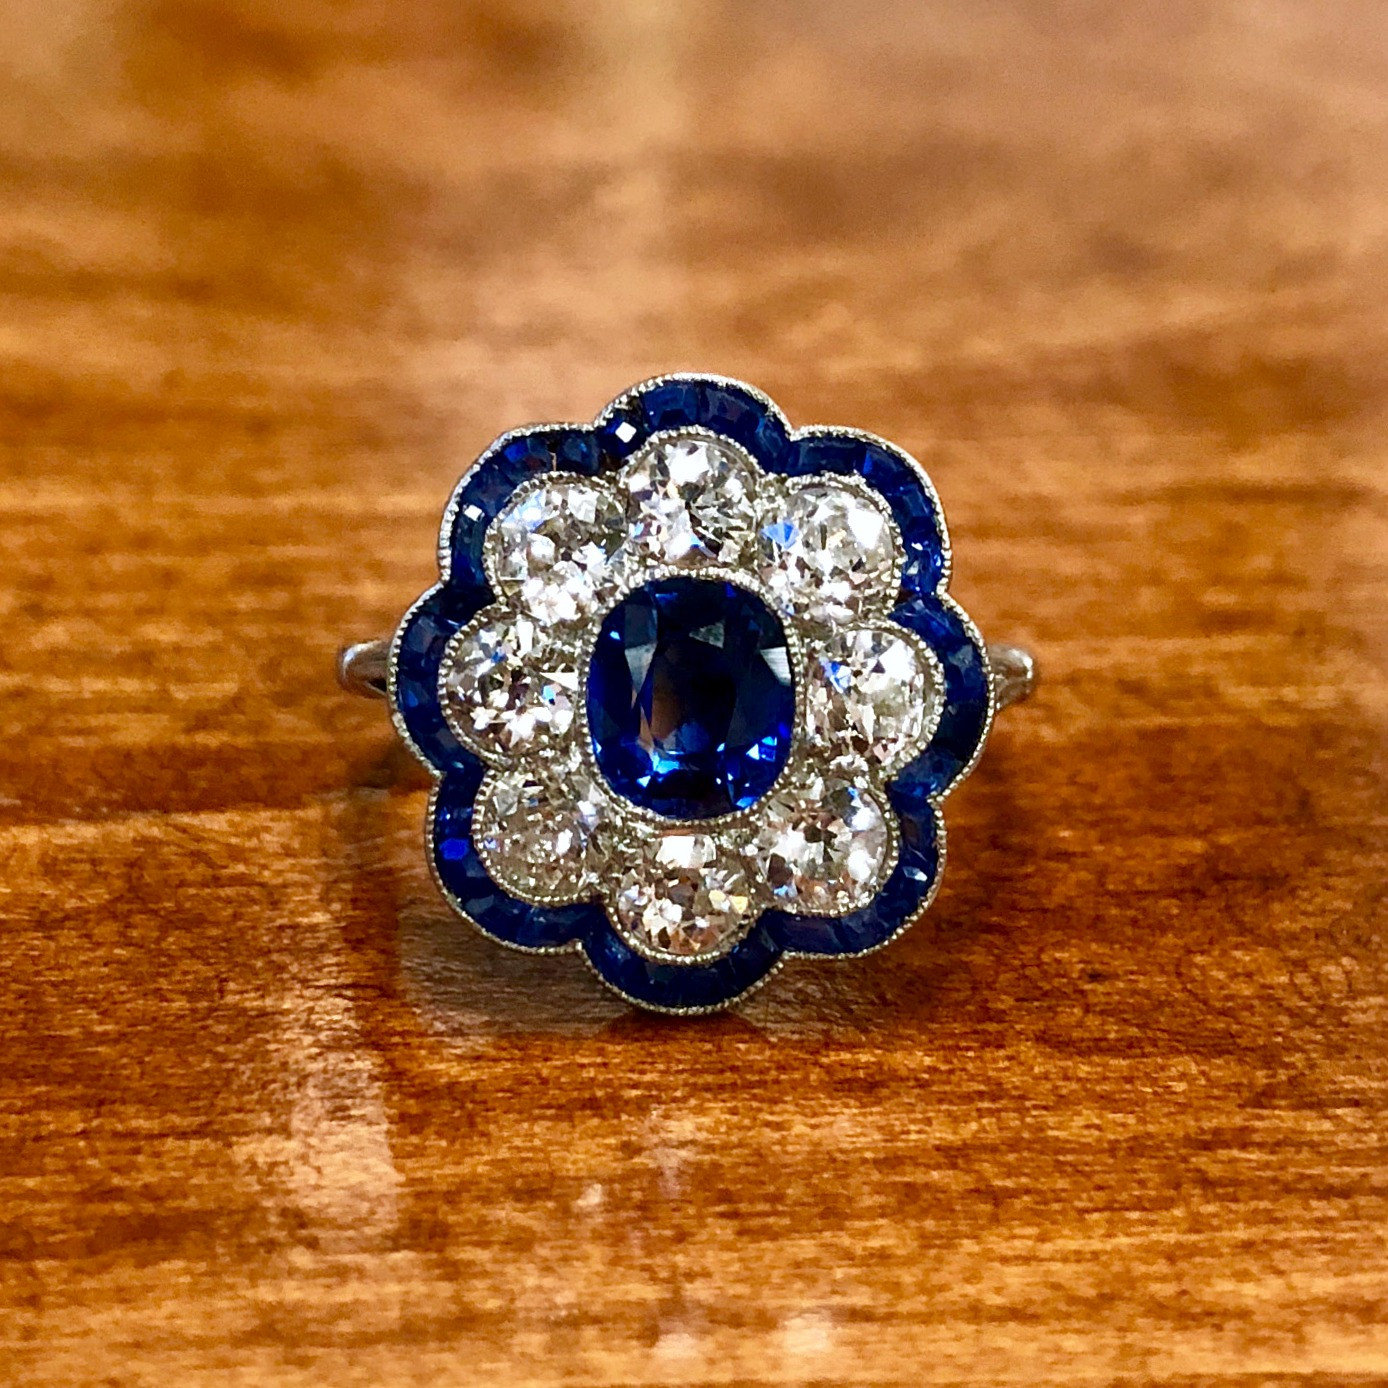 and upcoming rare estate carats beautiful sapphire gems christies magnificant featuring ceylon december in jeanmjkim our jewelry sale christie by style magnificent jewels blog a s bright of